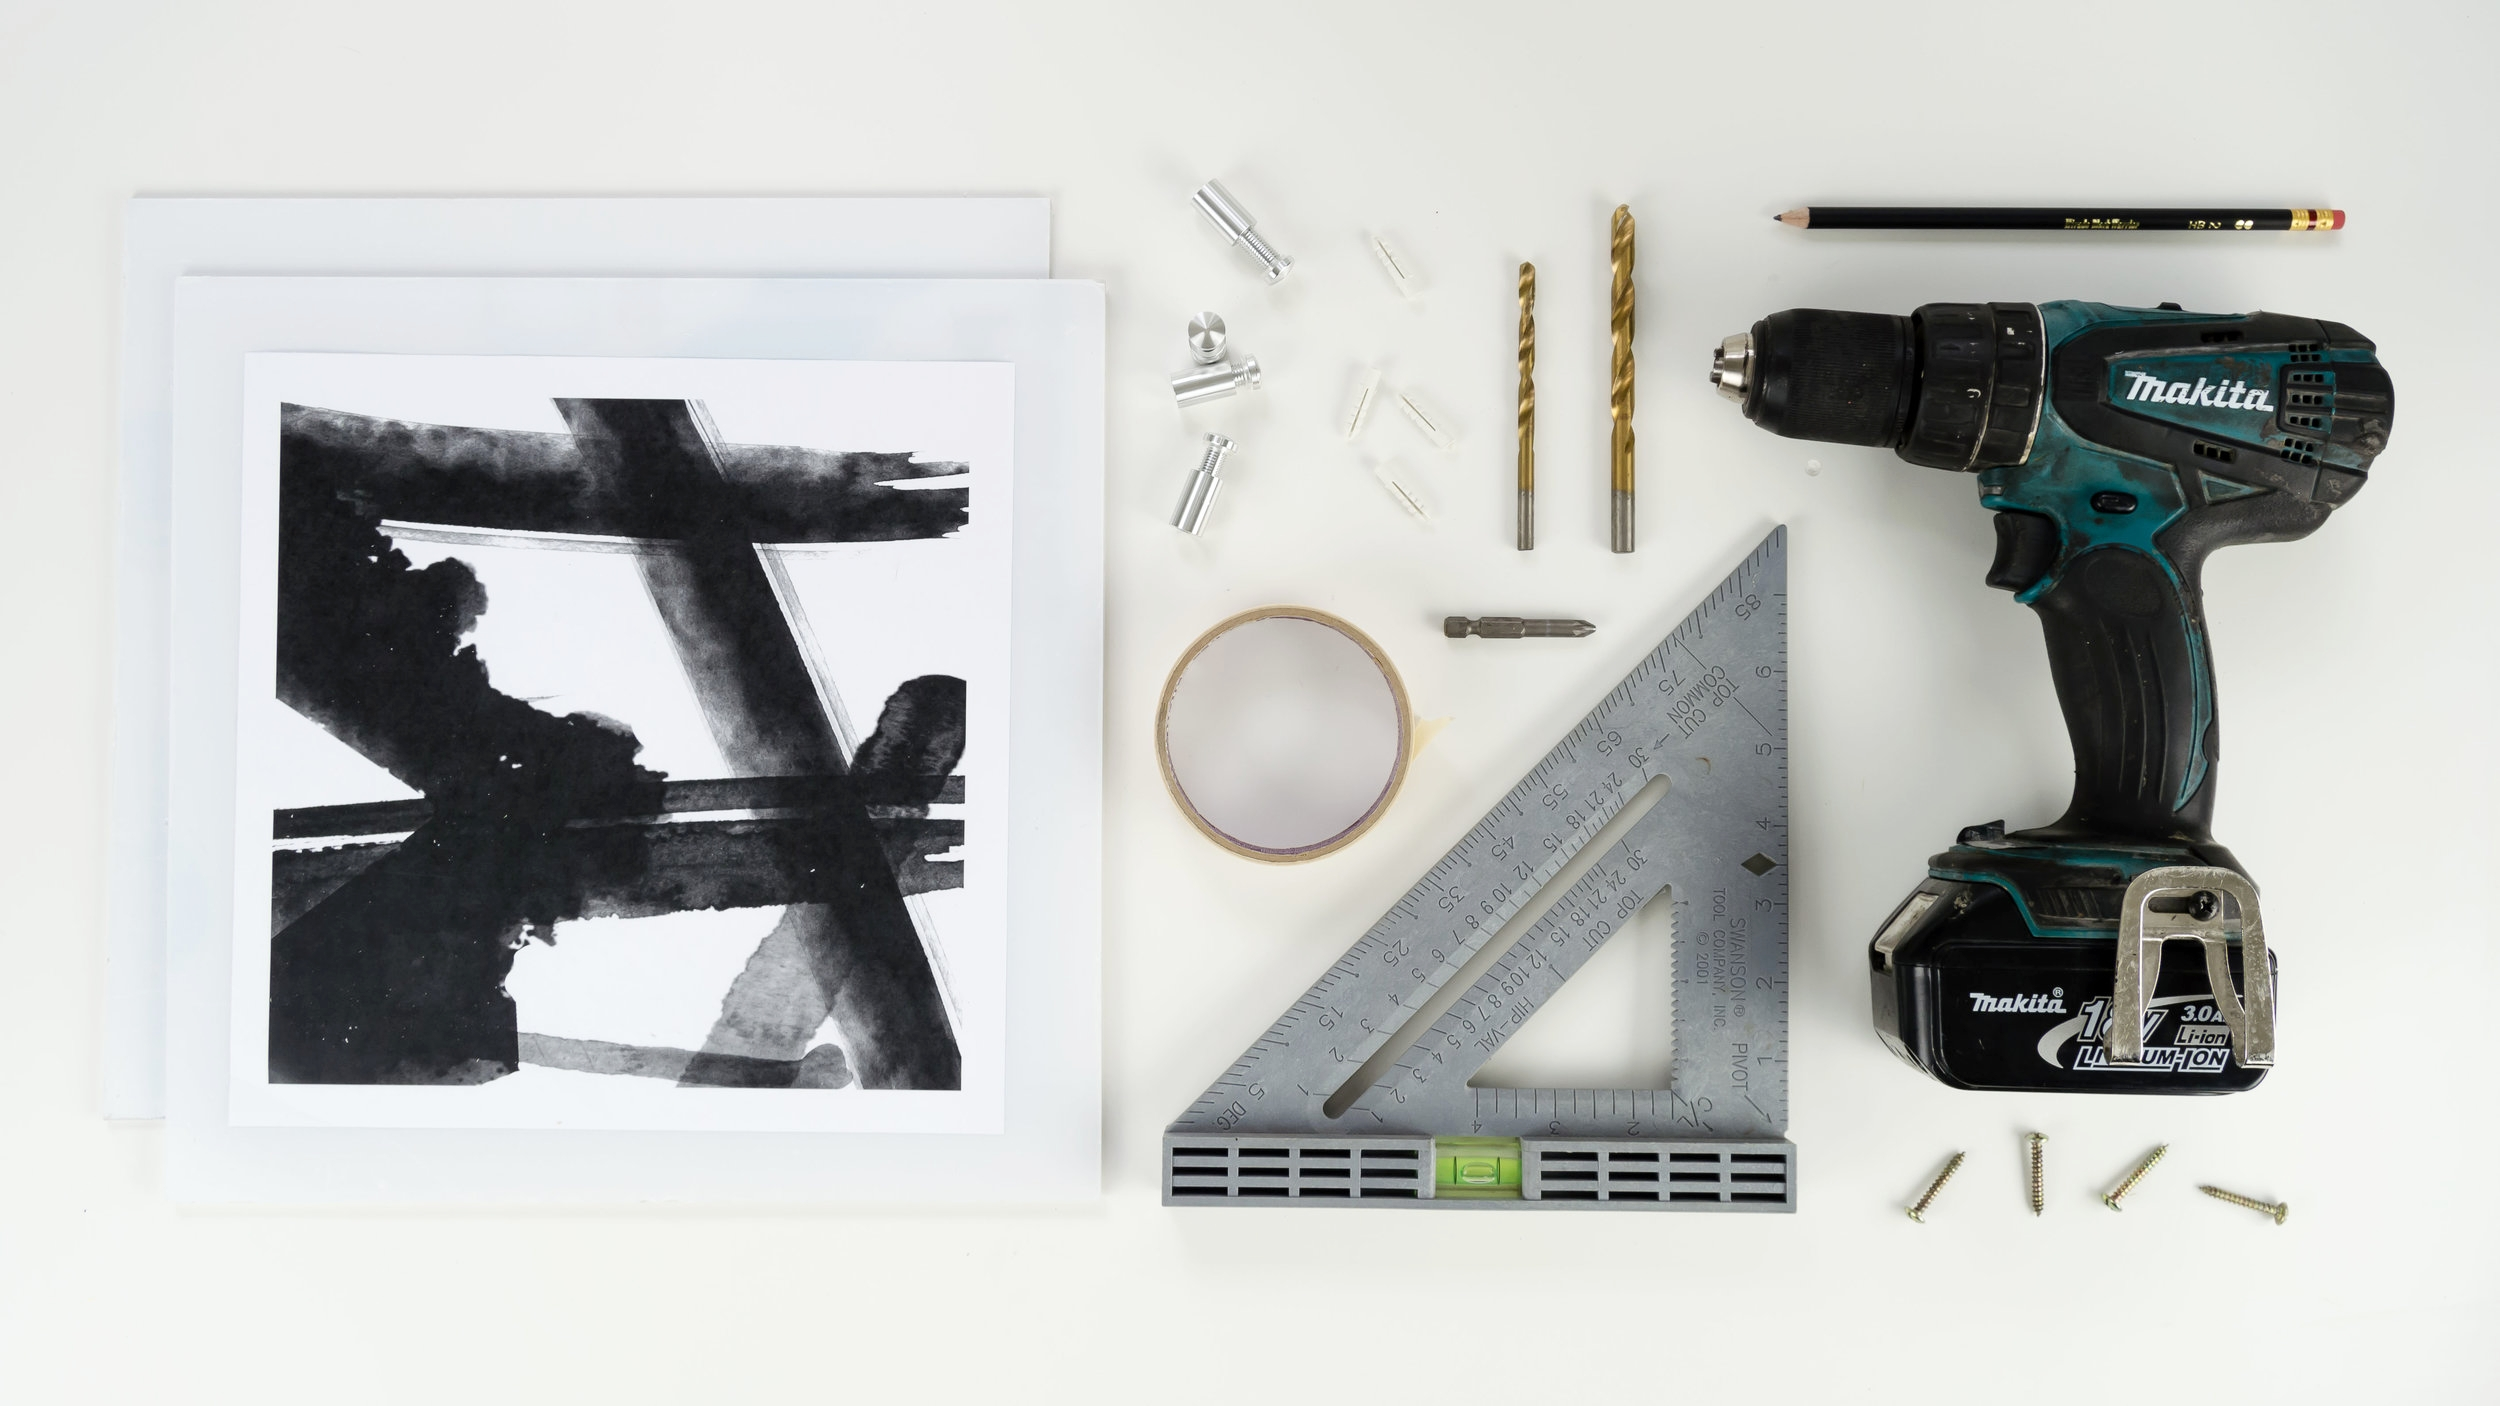 Materials Needed for to make a DIY Acrylic Frame